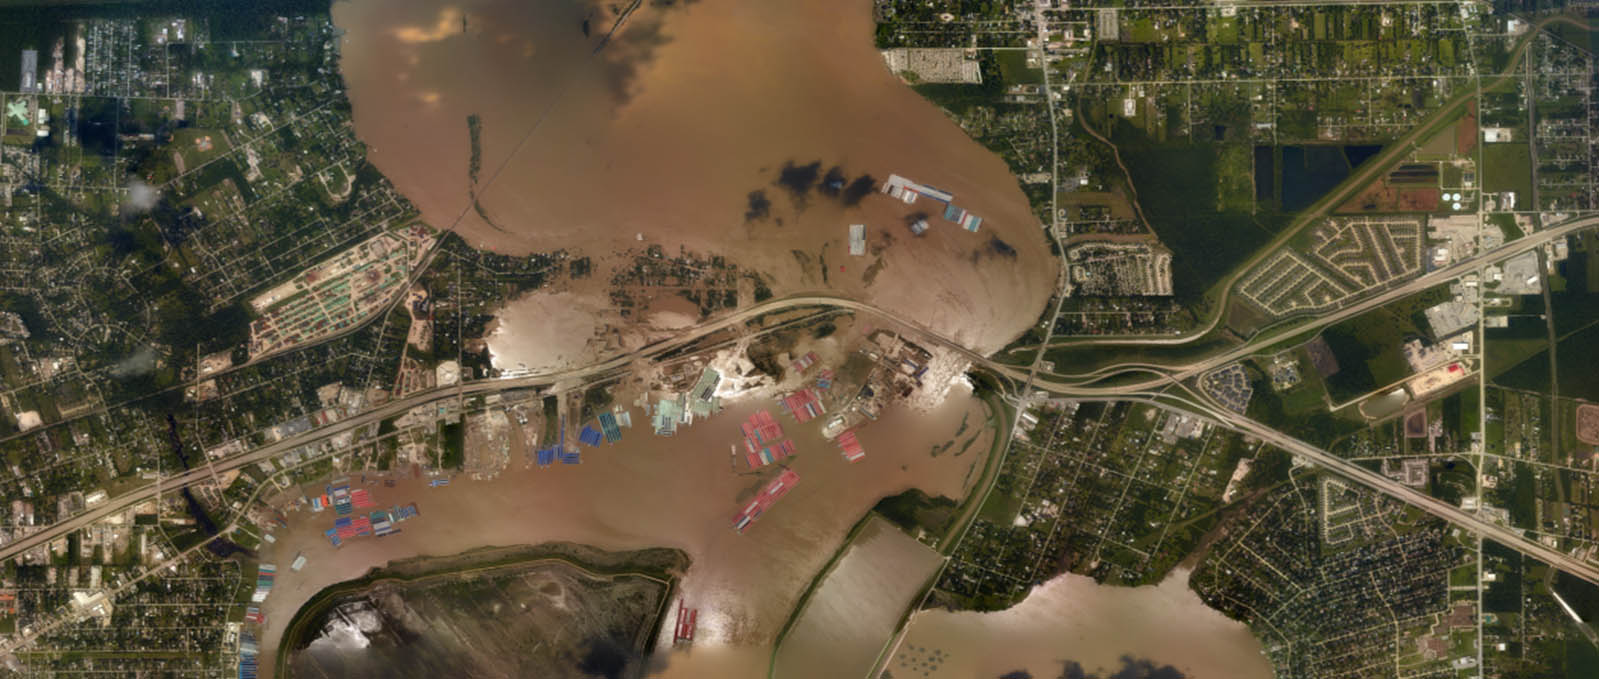 Aerial imagery of inland-coastal flooding during Hurricane Harvey, 2017 in Houston, Texas.